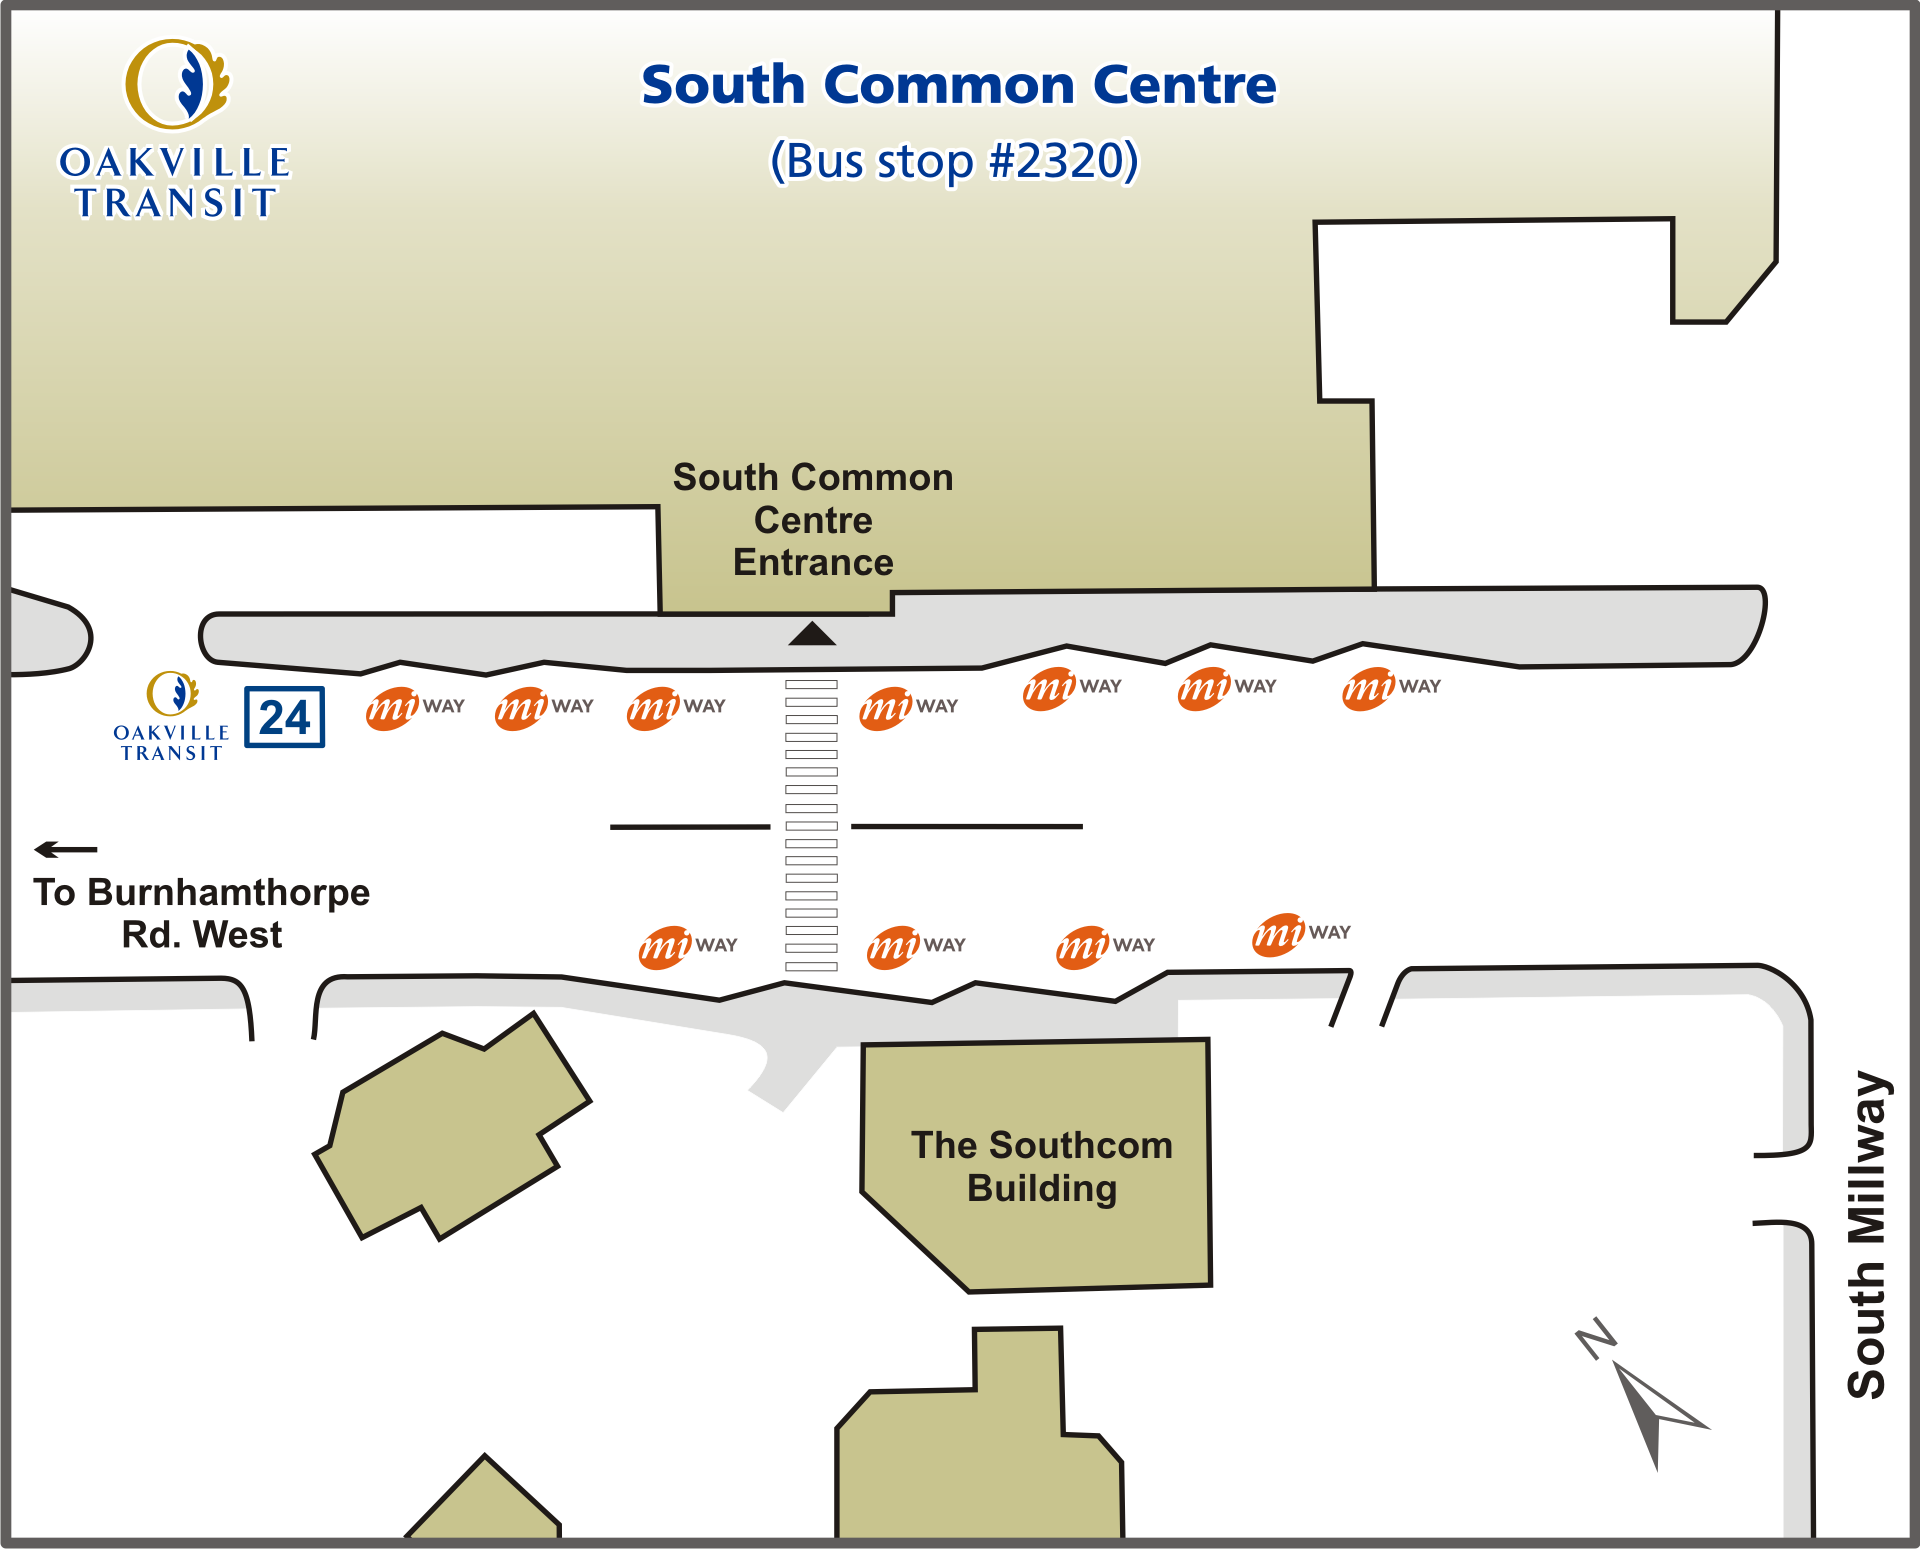 South Common Centre Terminal map